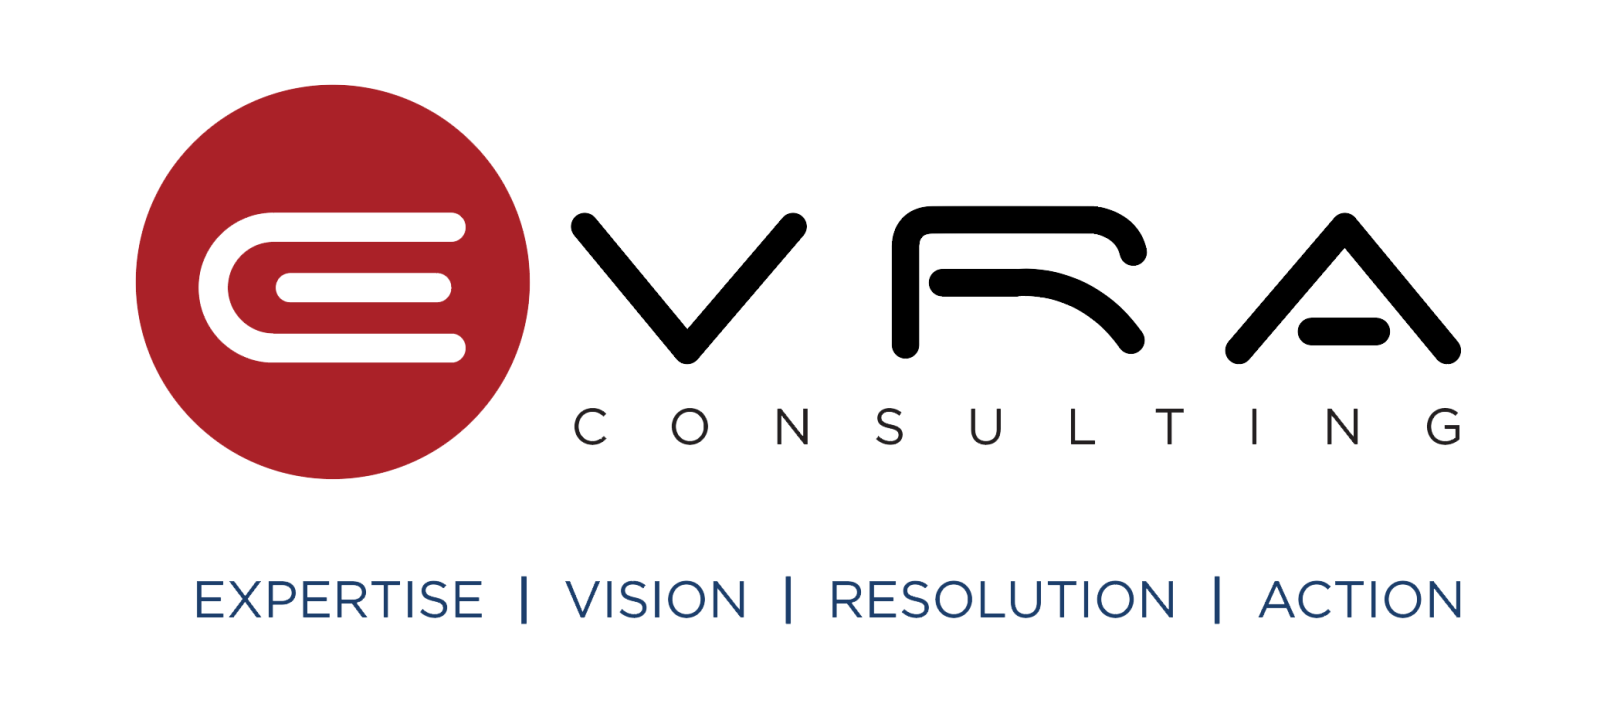 EVRA Consulting, construction consultancy and dispute resolution services in Africa